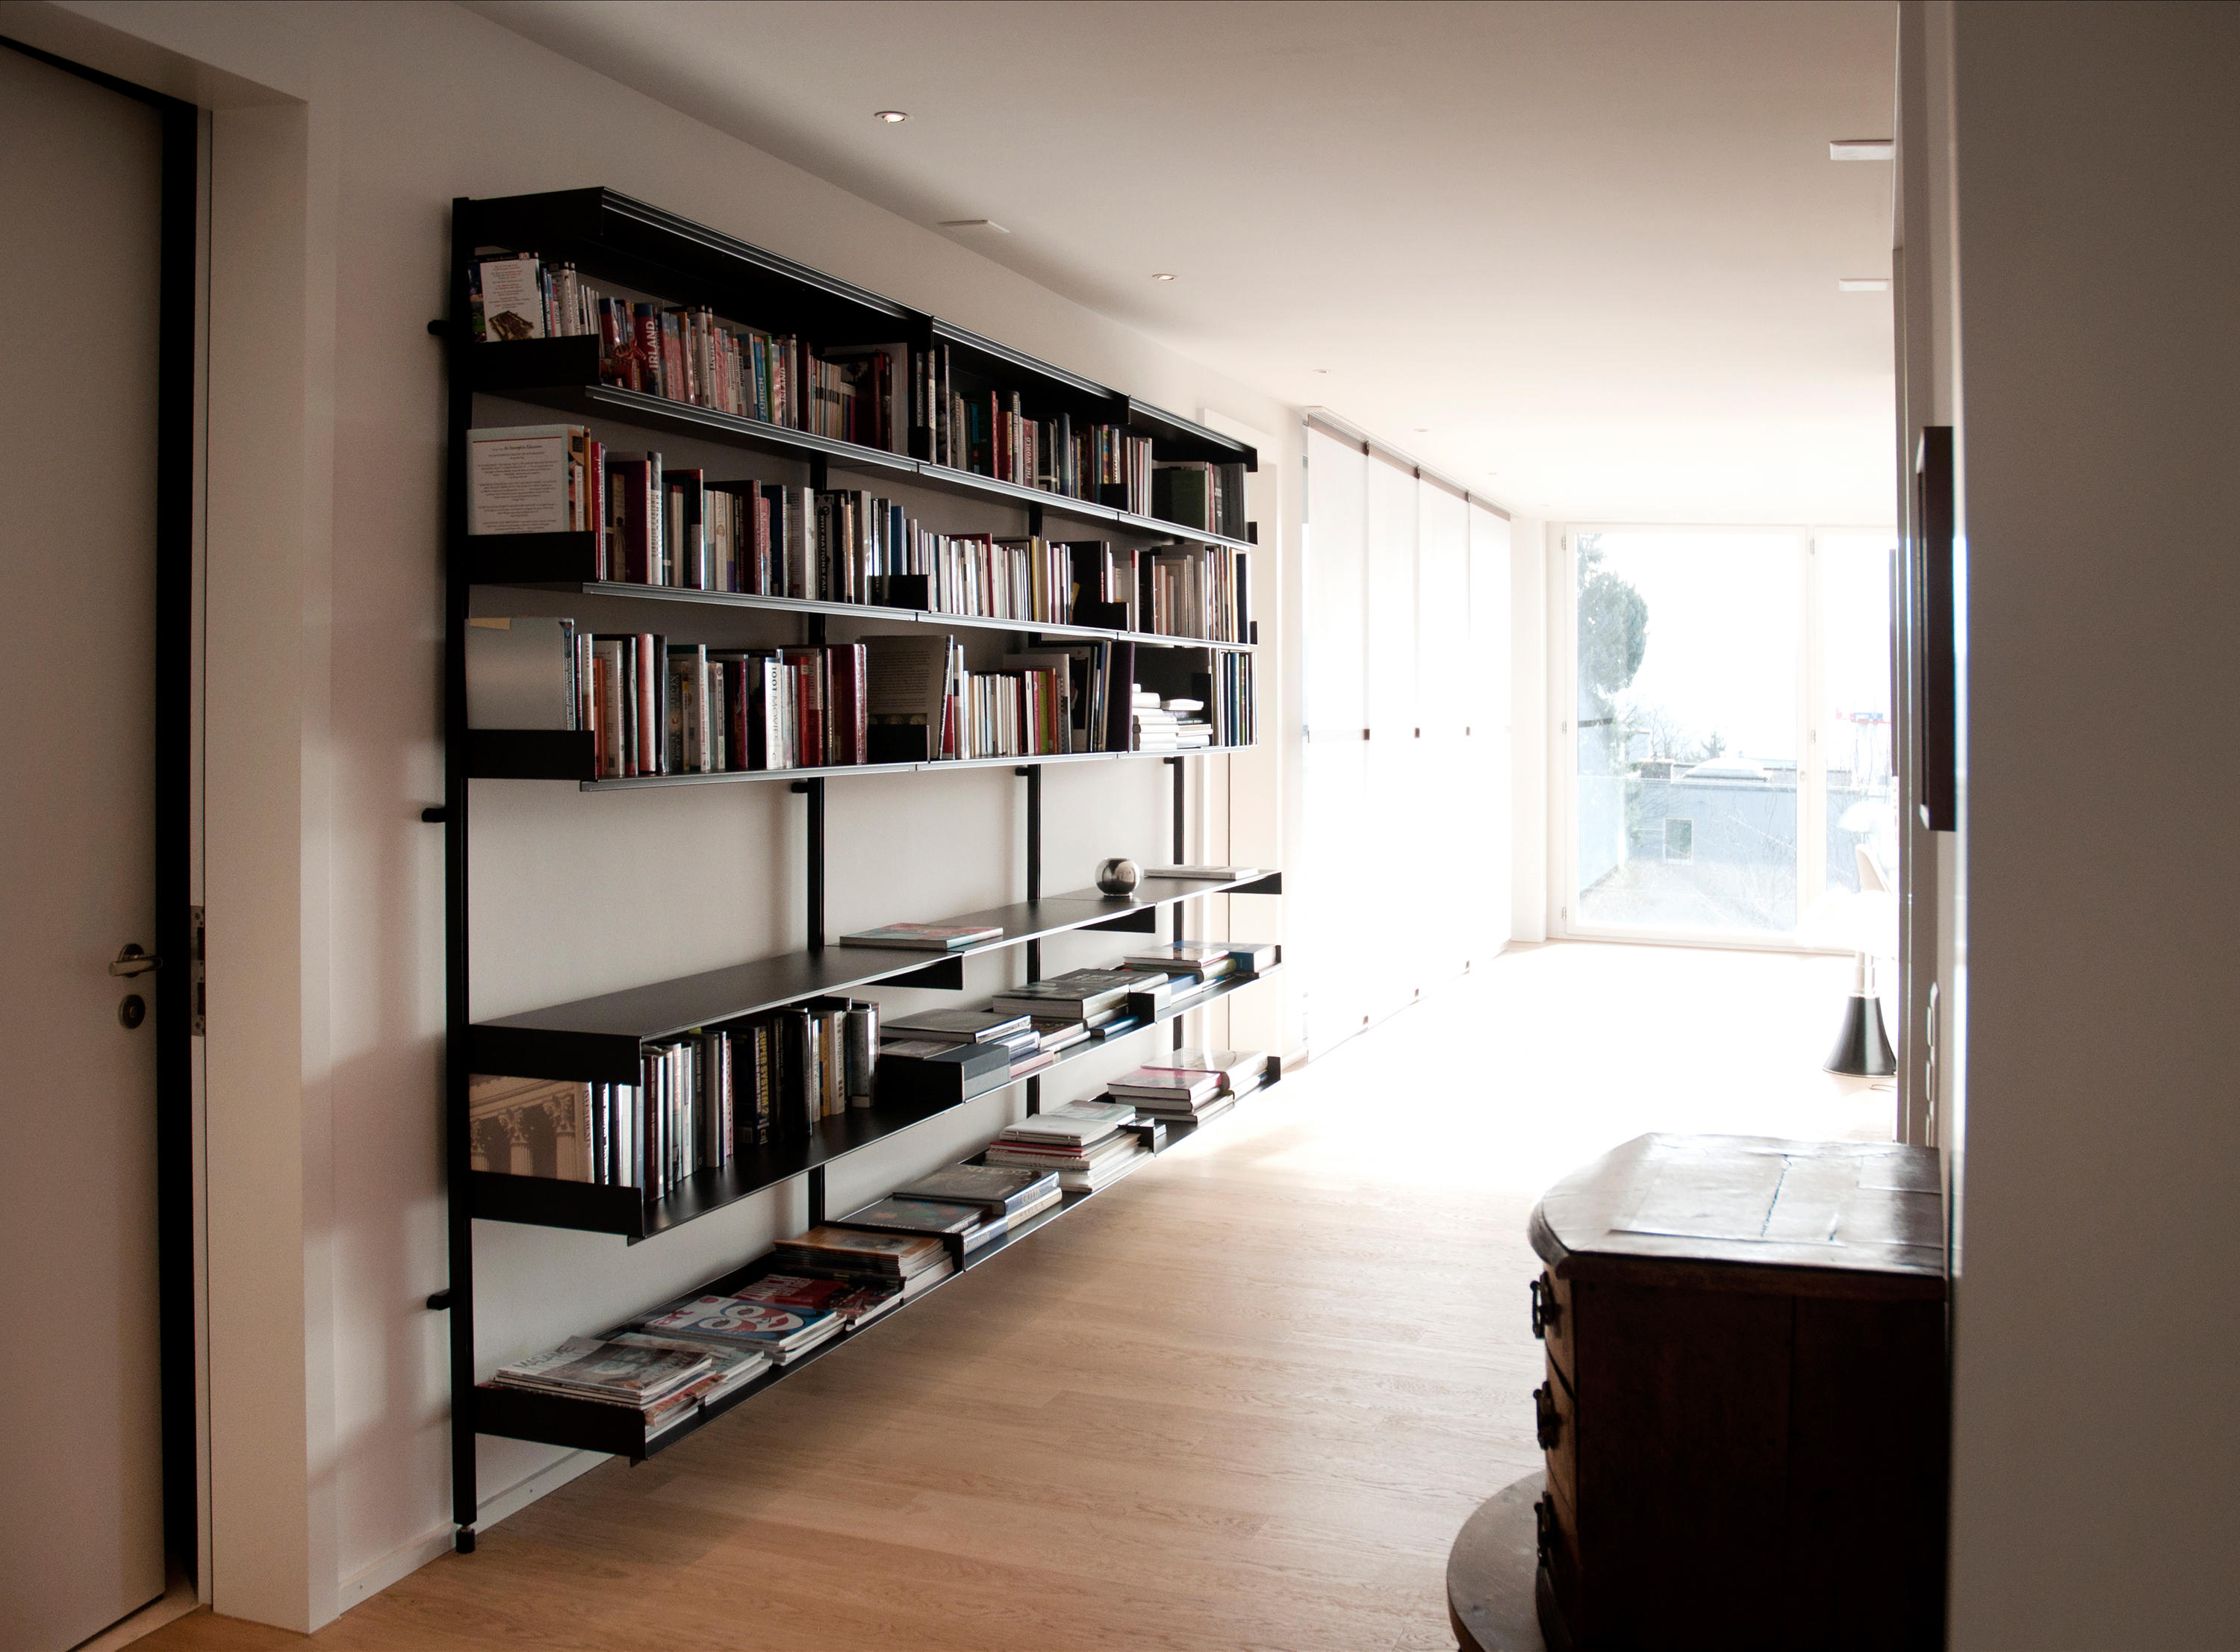 System M Shelves By S+ Systemmöbel | Library Shelving Systems ...